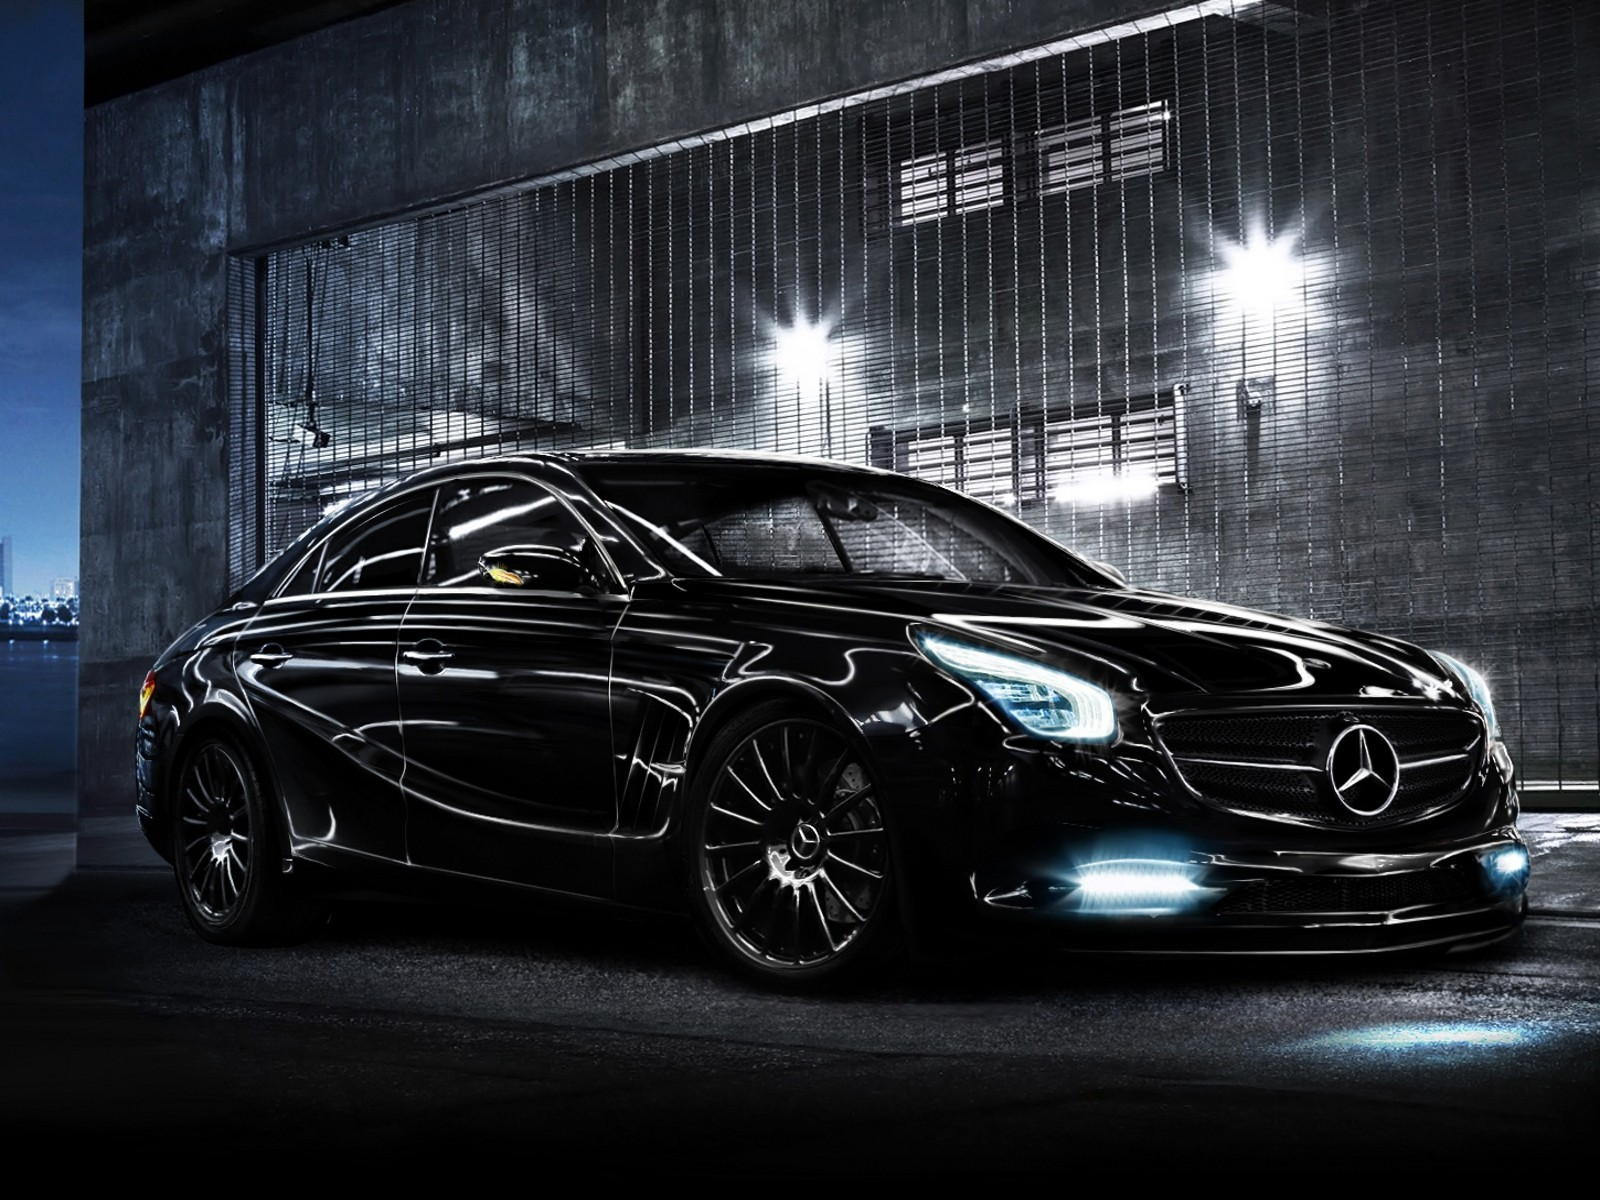 black cars Mercedes-Benz HD Wallpaper